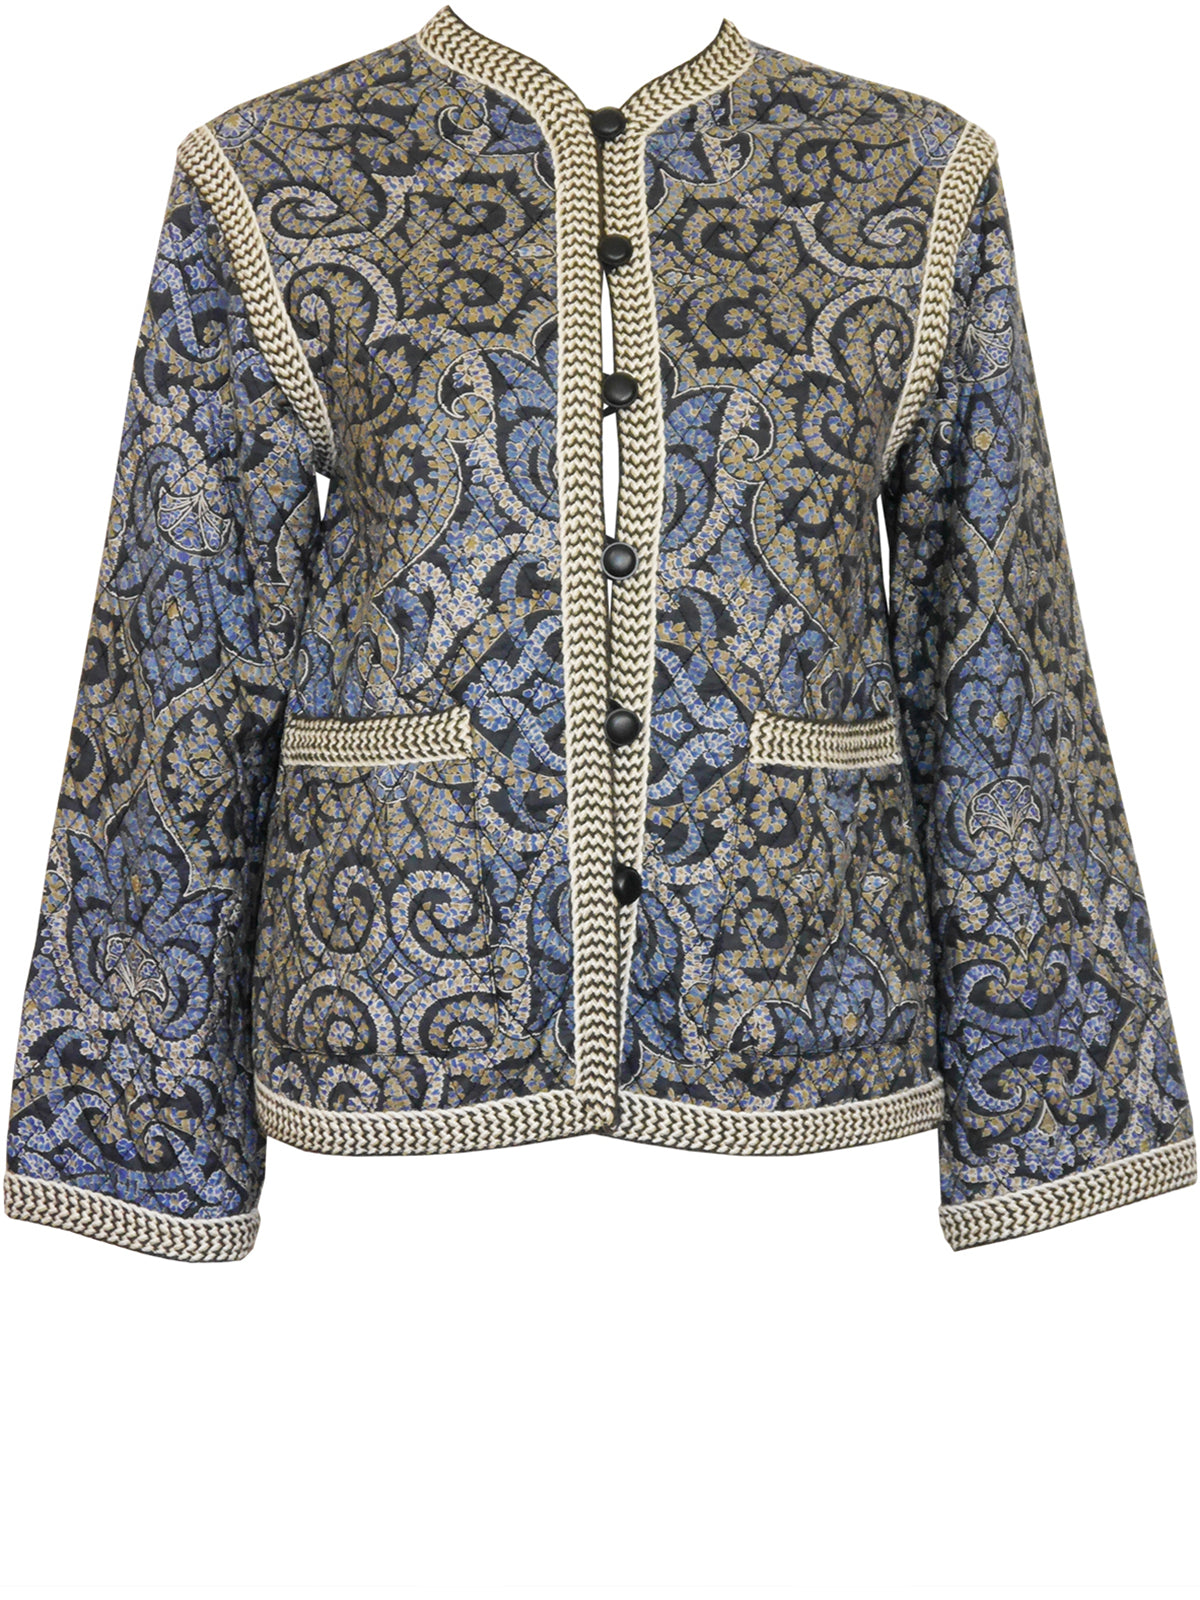 Sold - YVES SAINT LAURENT Vintage S/S 1977 Quilted Silk Evening Jacket Size XS